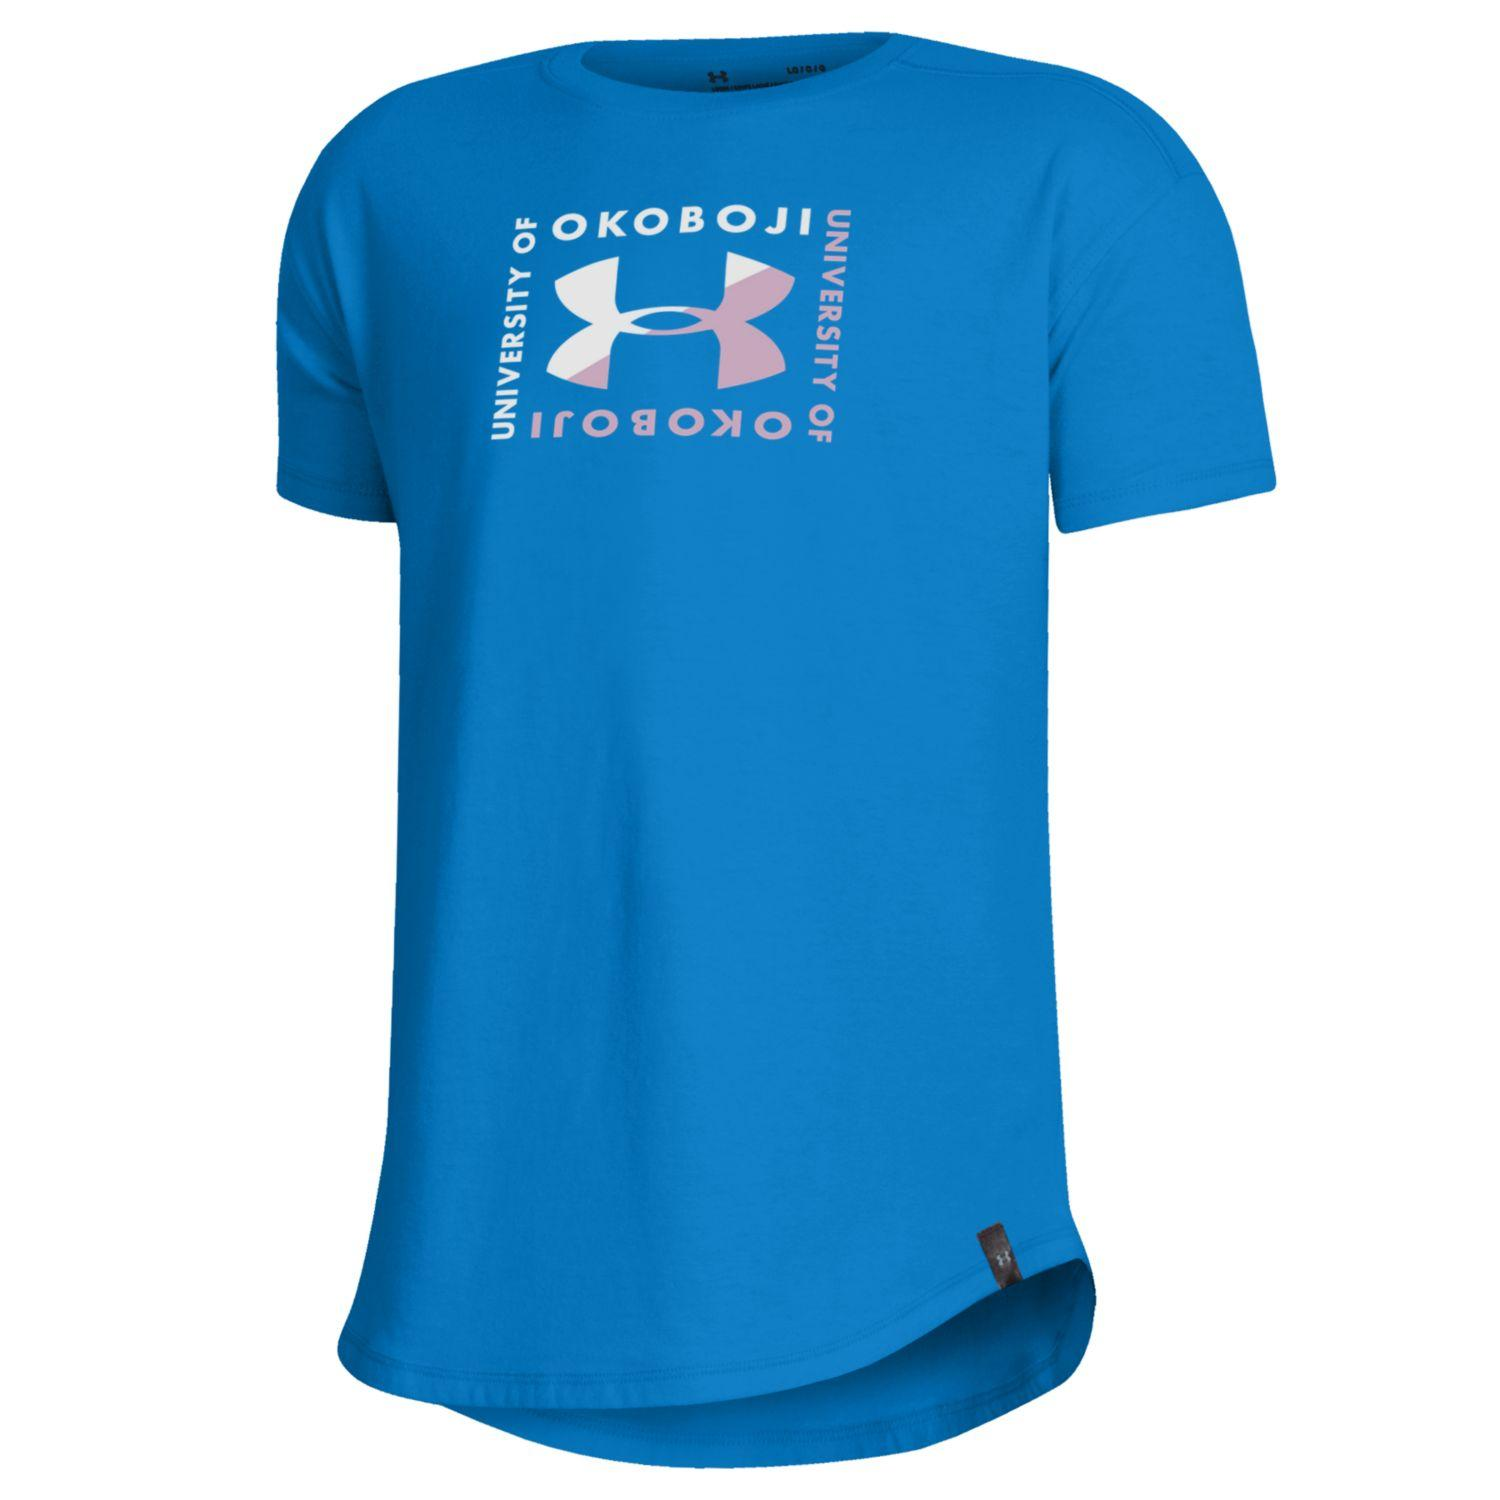 Girls Performance Cotton Tee - Power Keg Blue